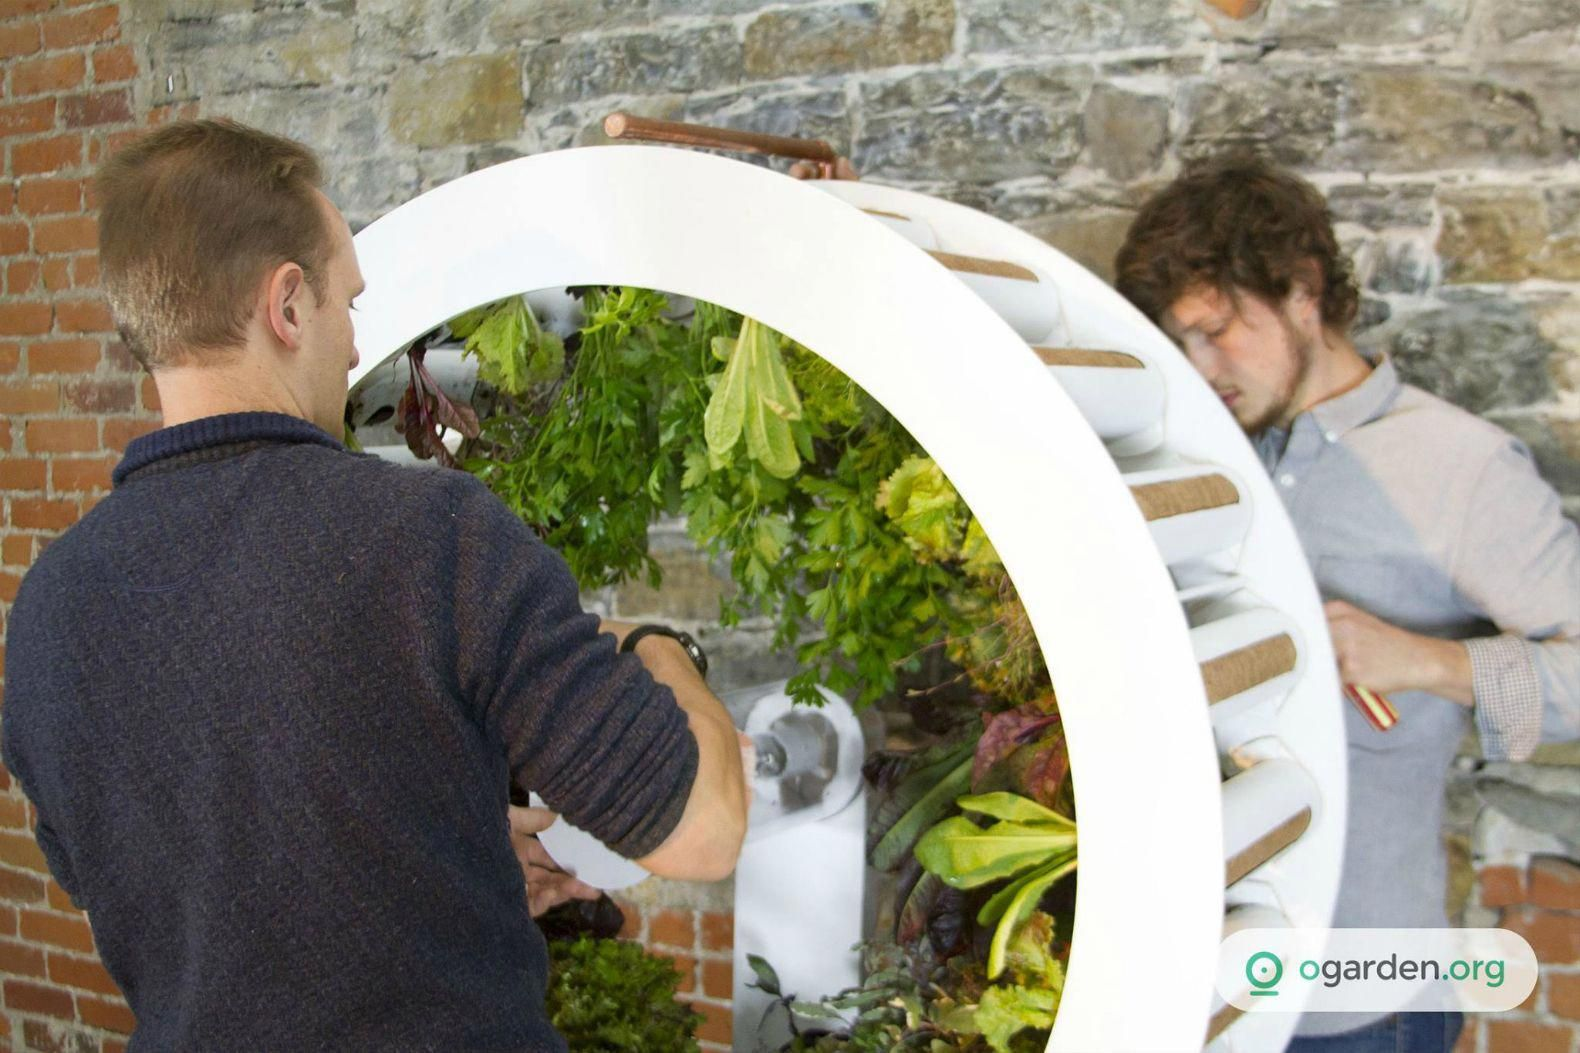 Rotating indoor garden grows up to 100 herbs and